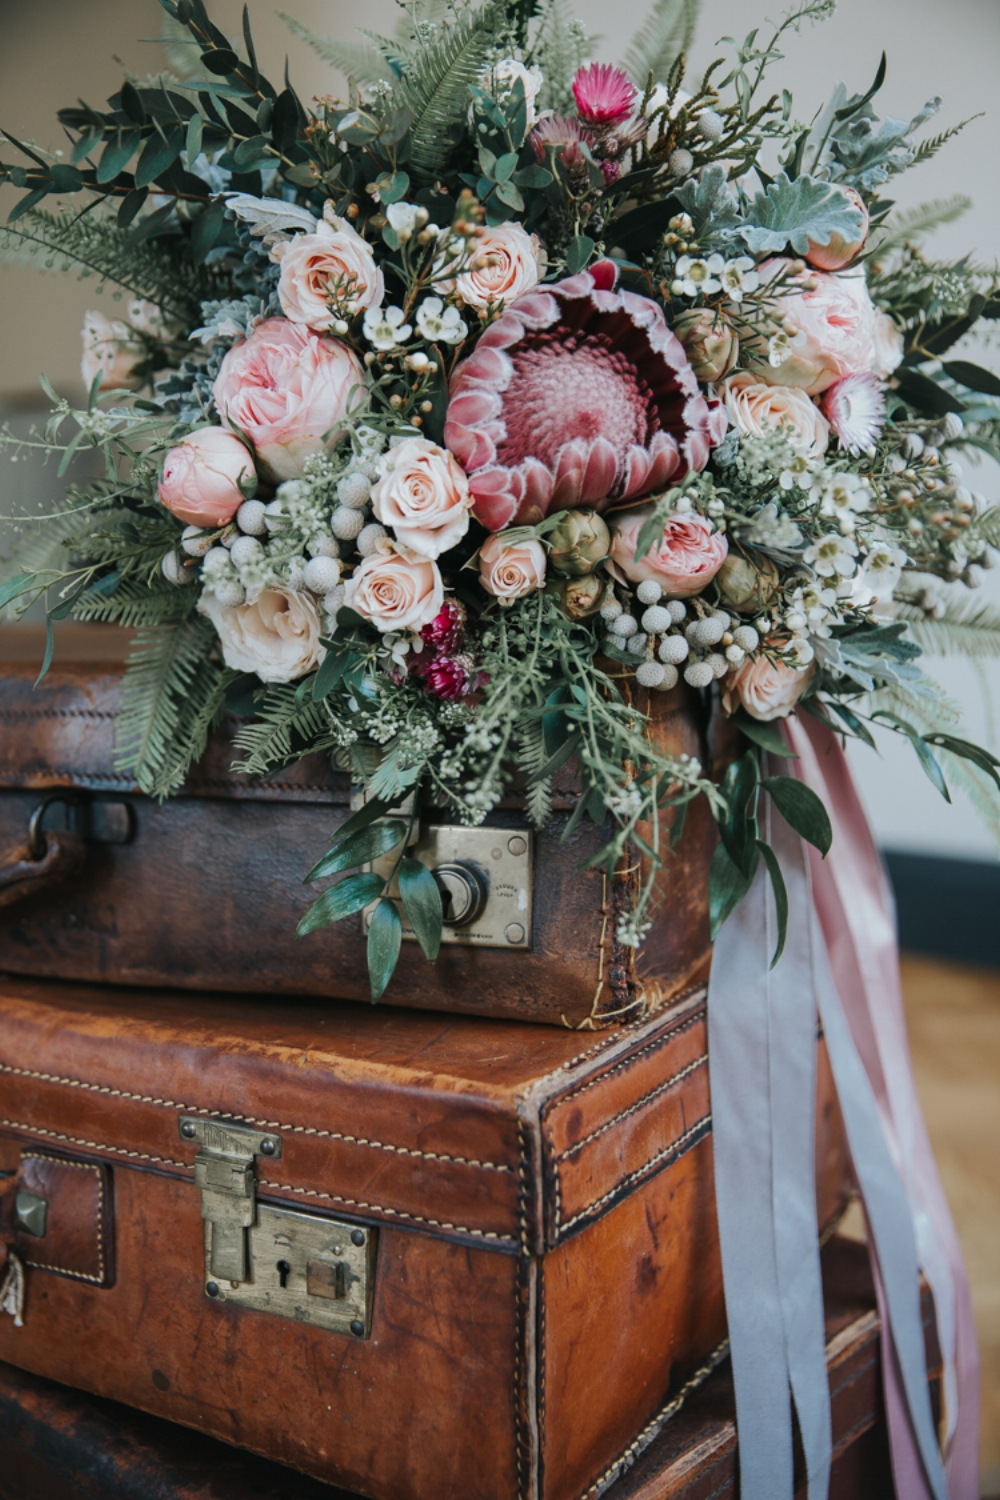 Into the Wild floral design - Dreamy wedding inspiration 5